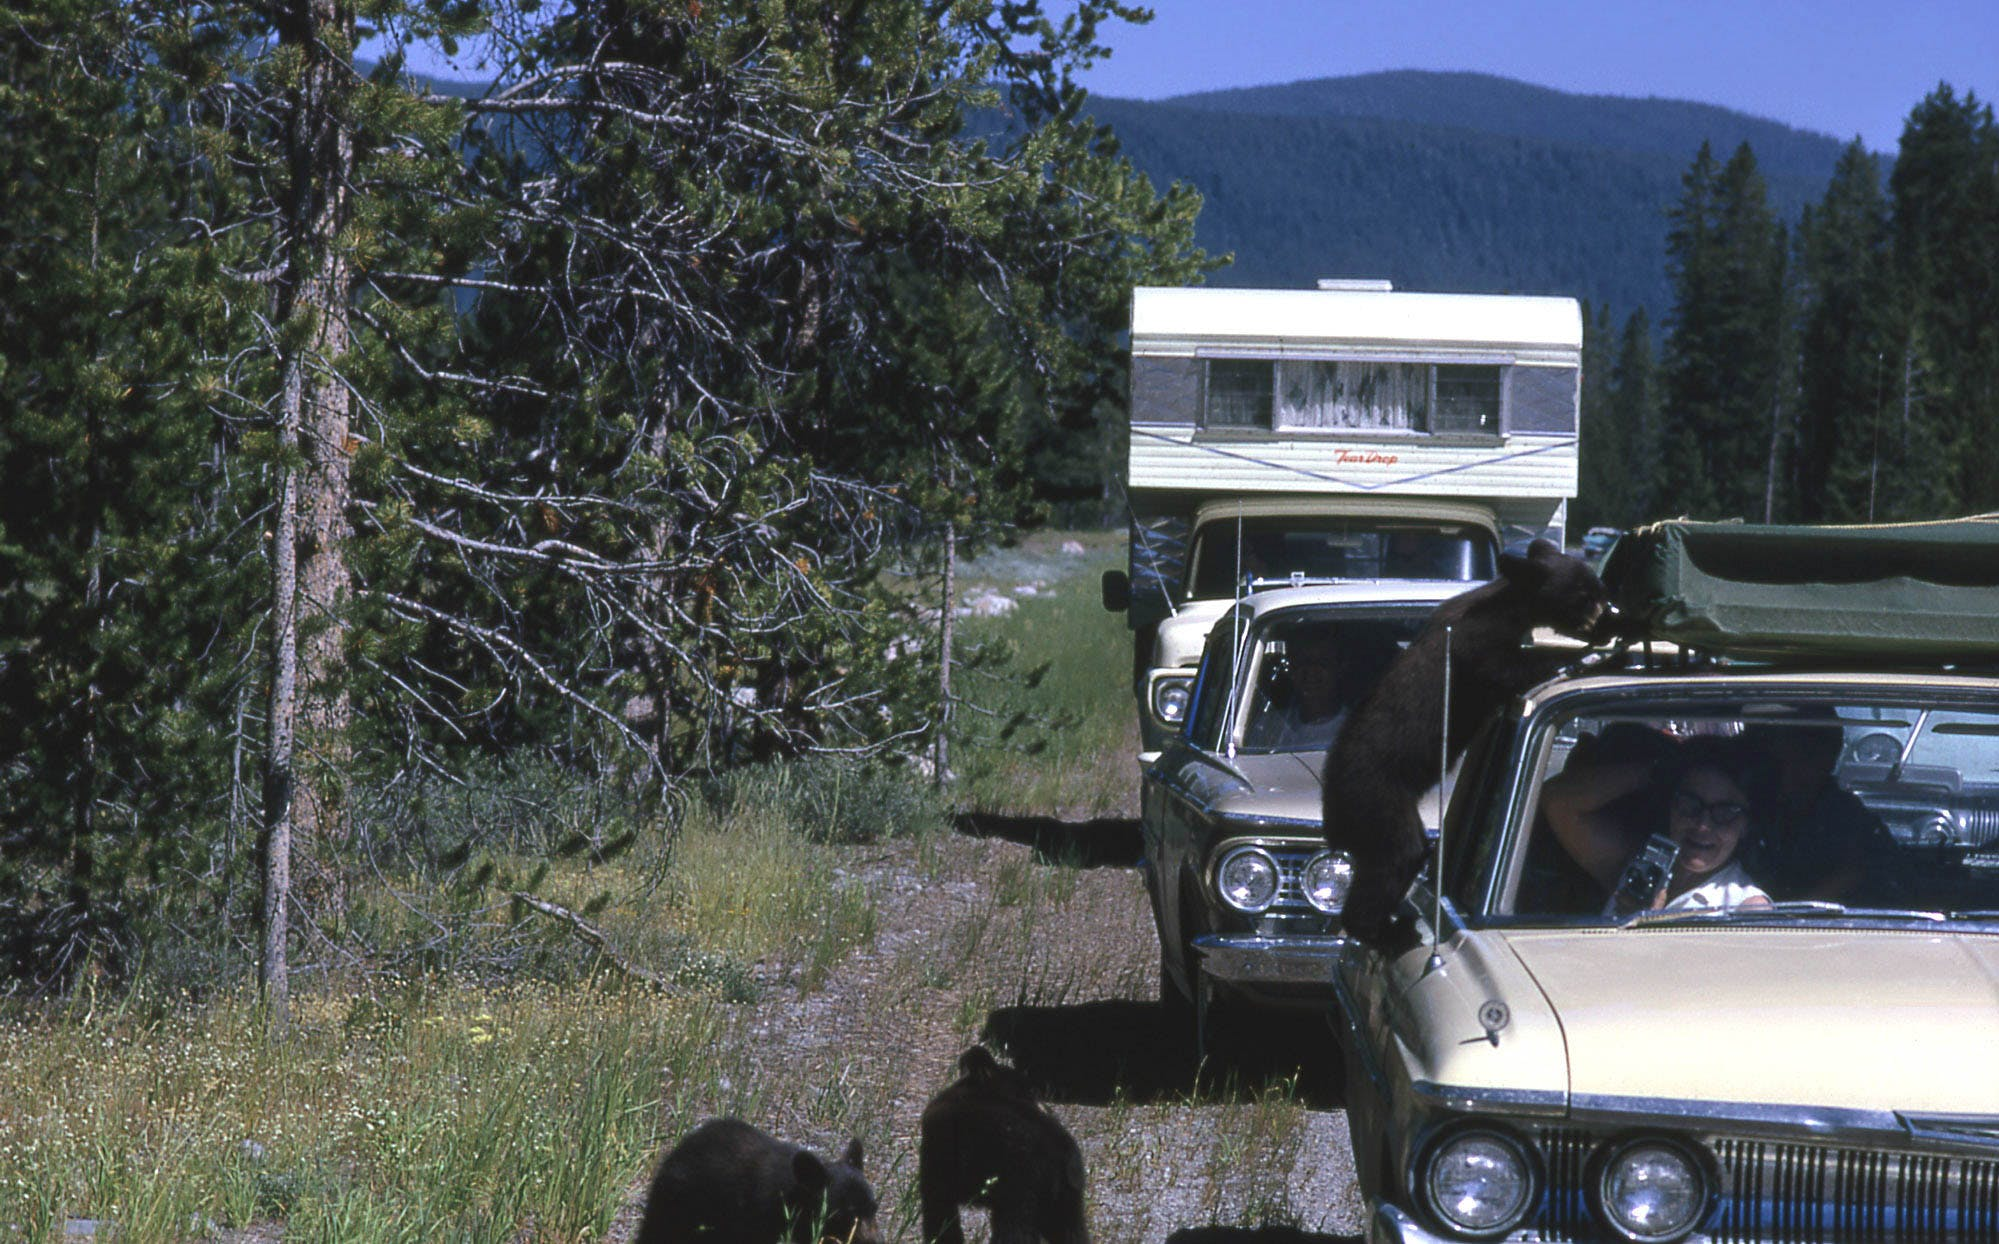 Three black bear cubs by cars, one is climbing on a car.